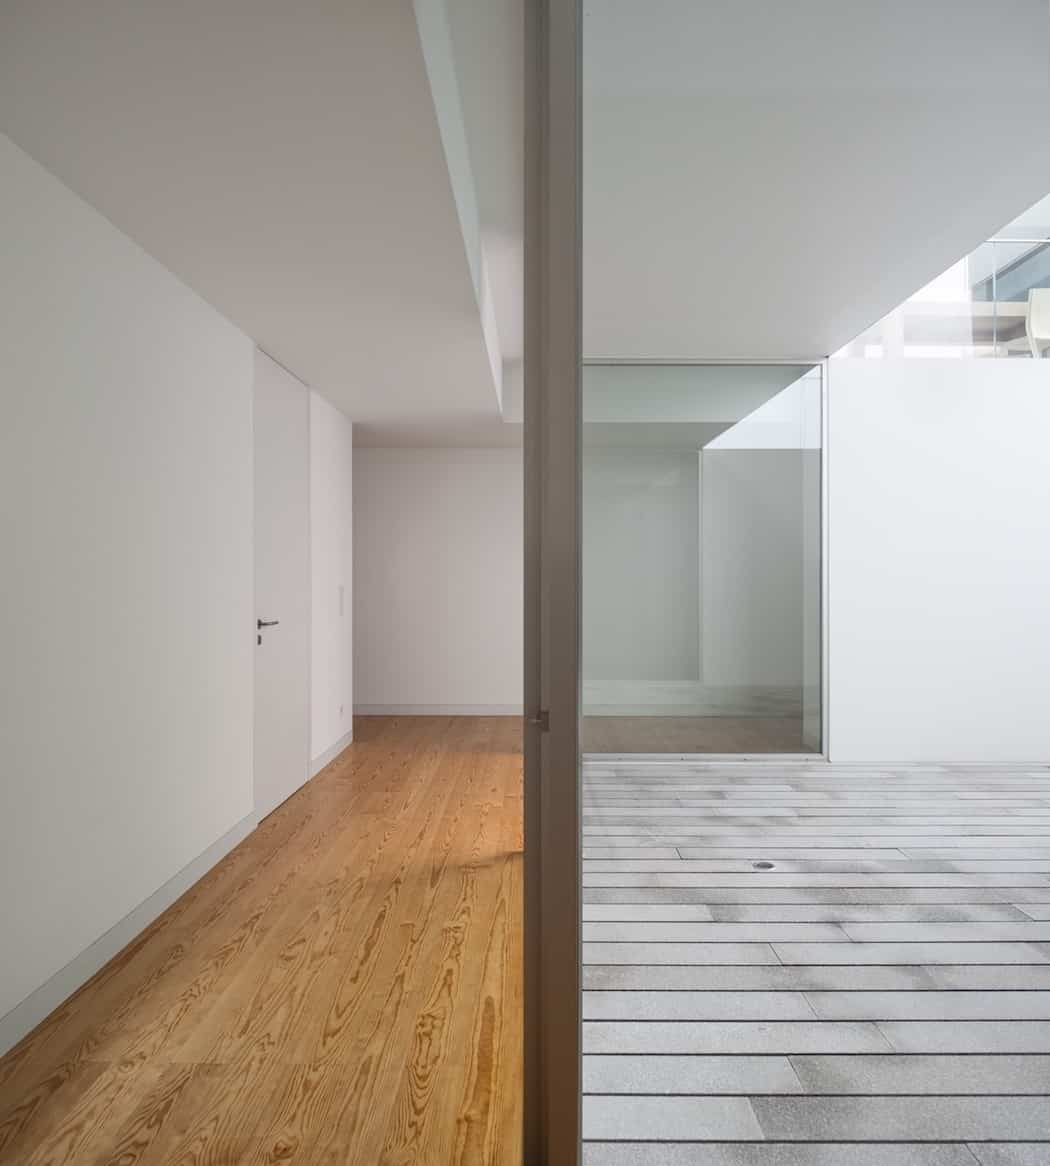 Impeccable white volume by aires mateus in leiria for Architecture minimaliste